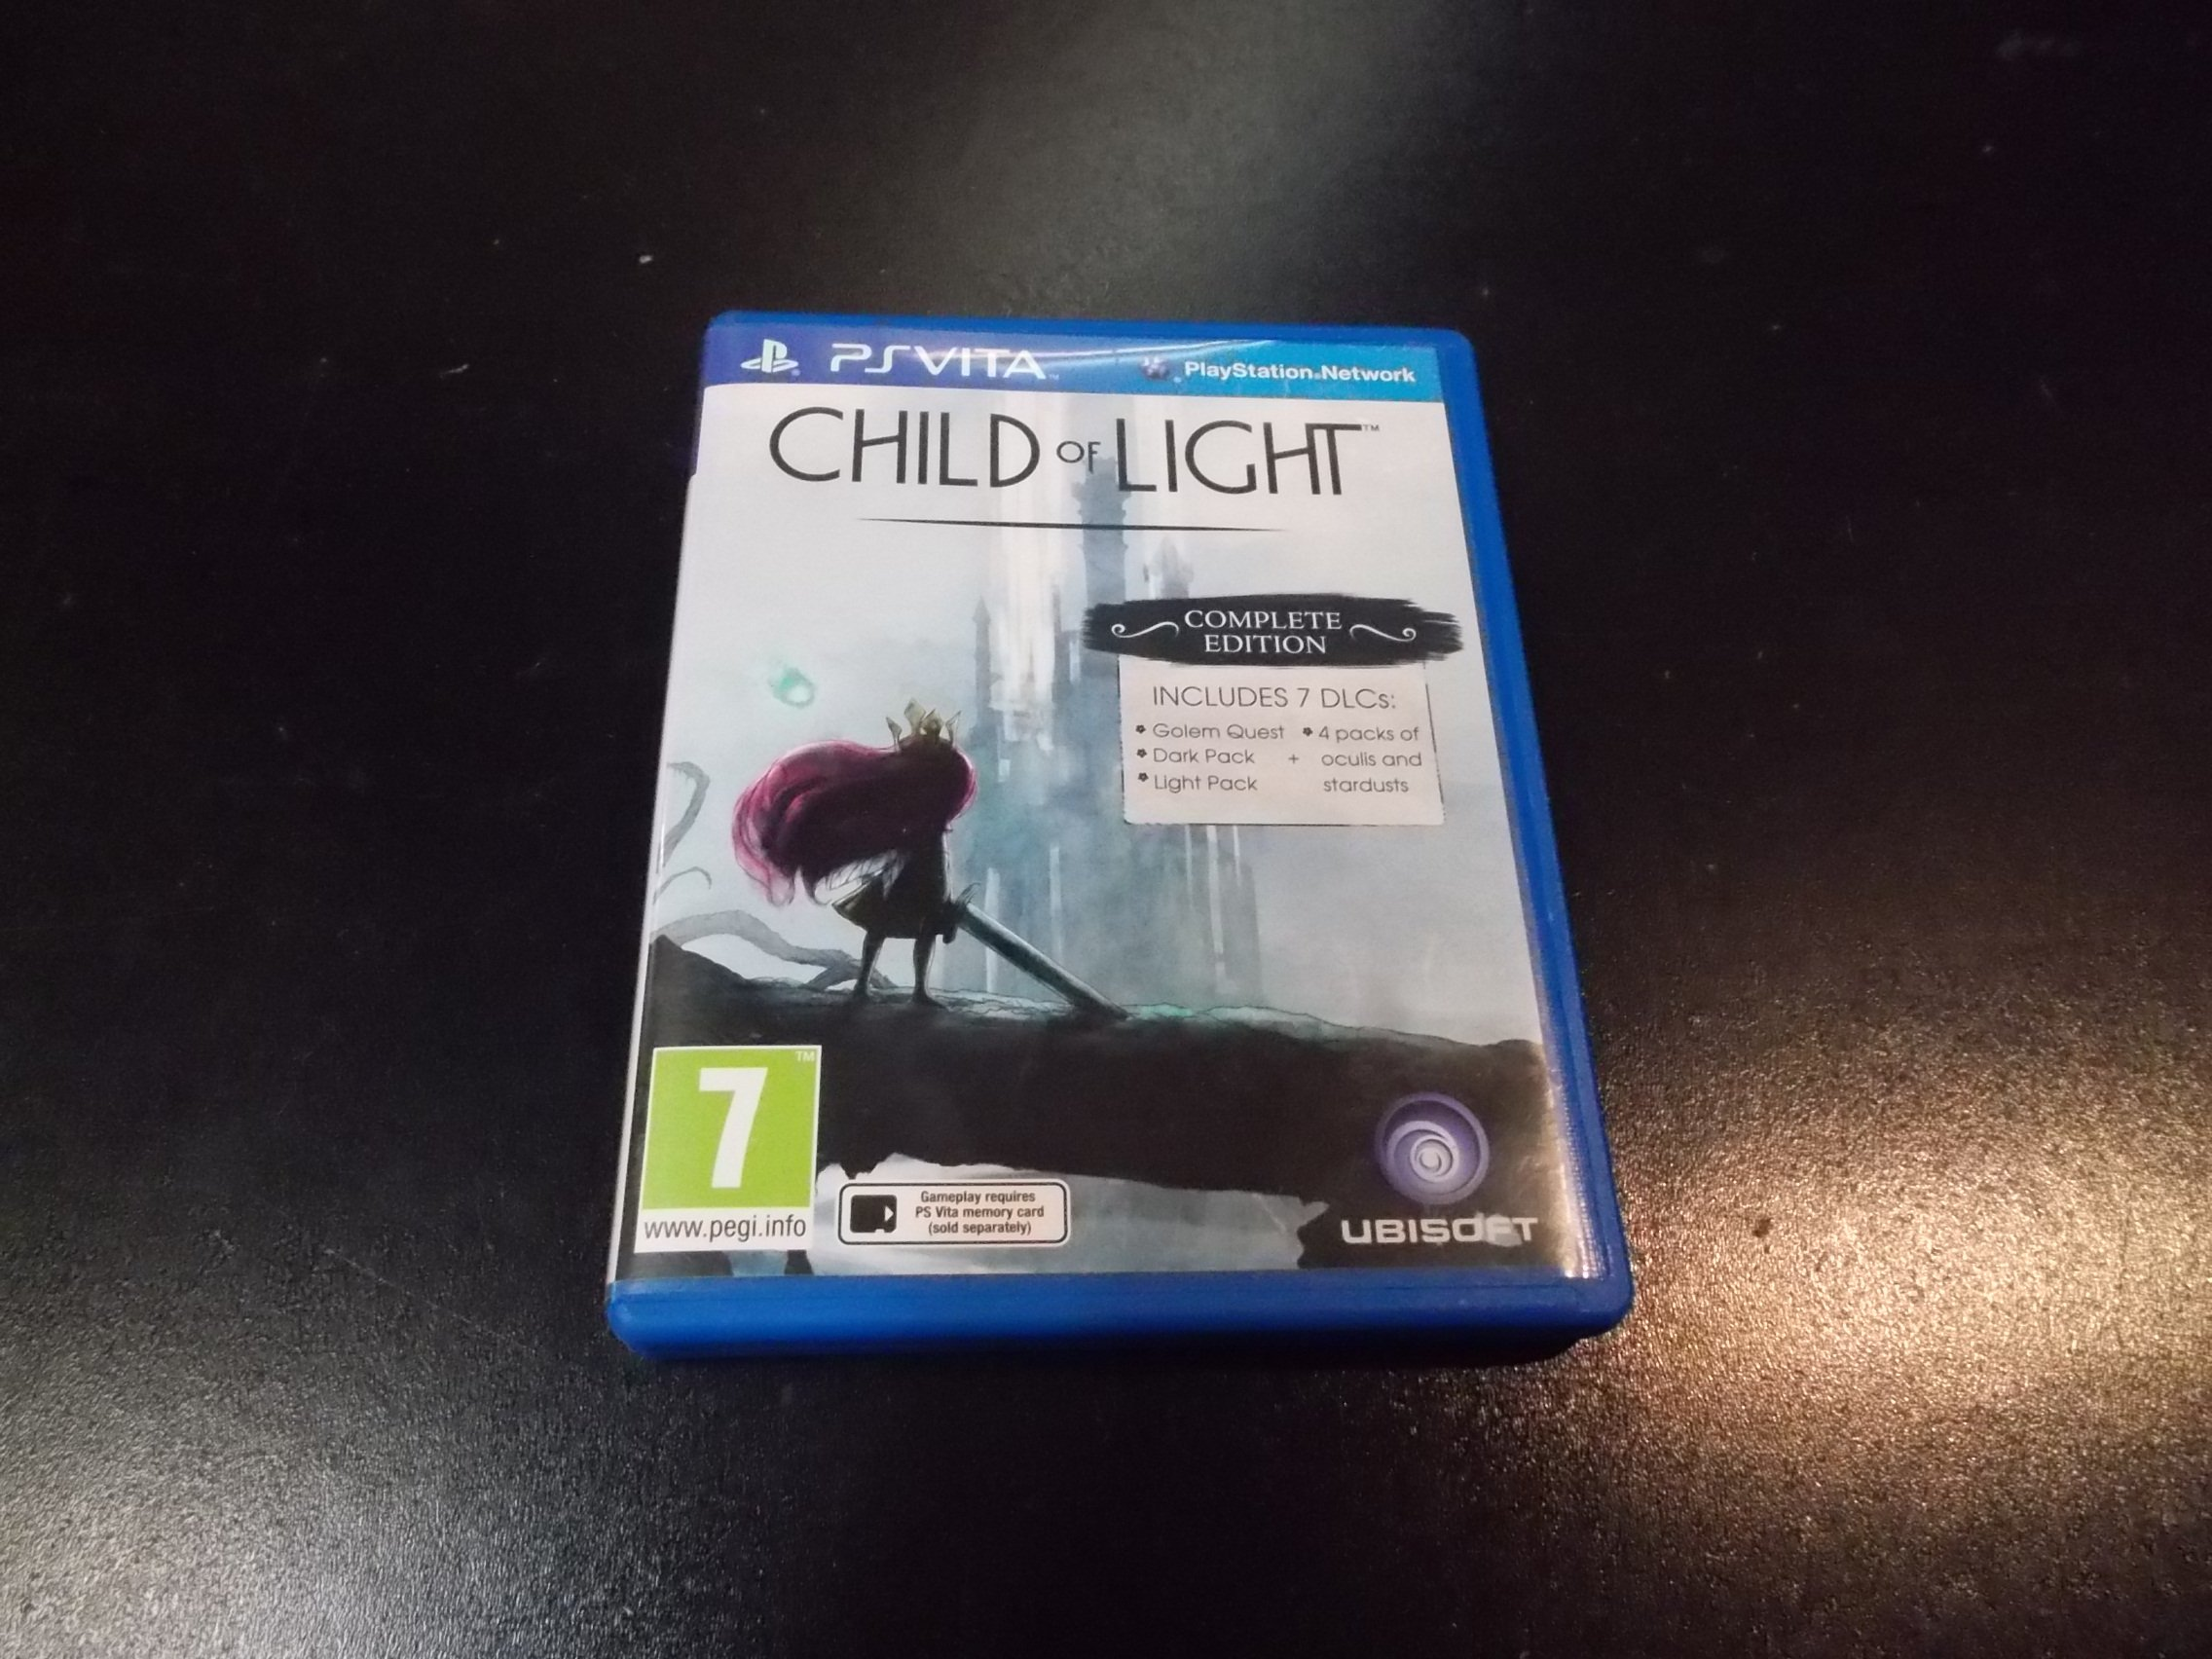 CHILD OF LIGHT COMPLETE EDITION - GRA Ps Vita Sklep